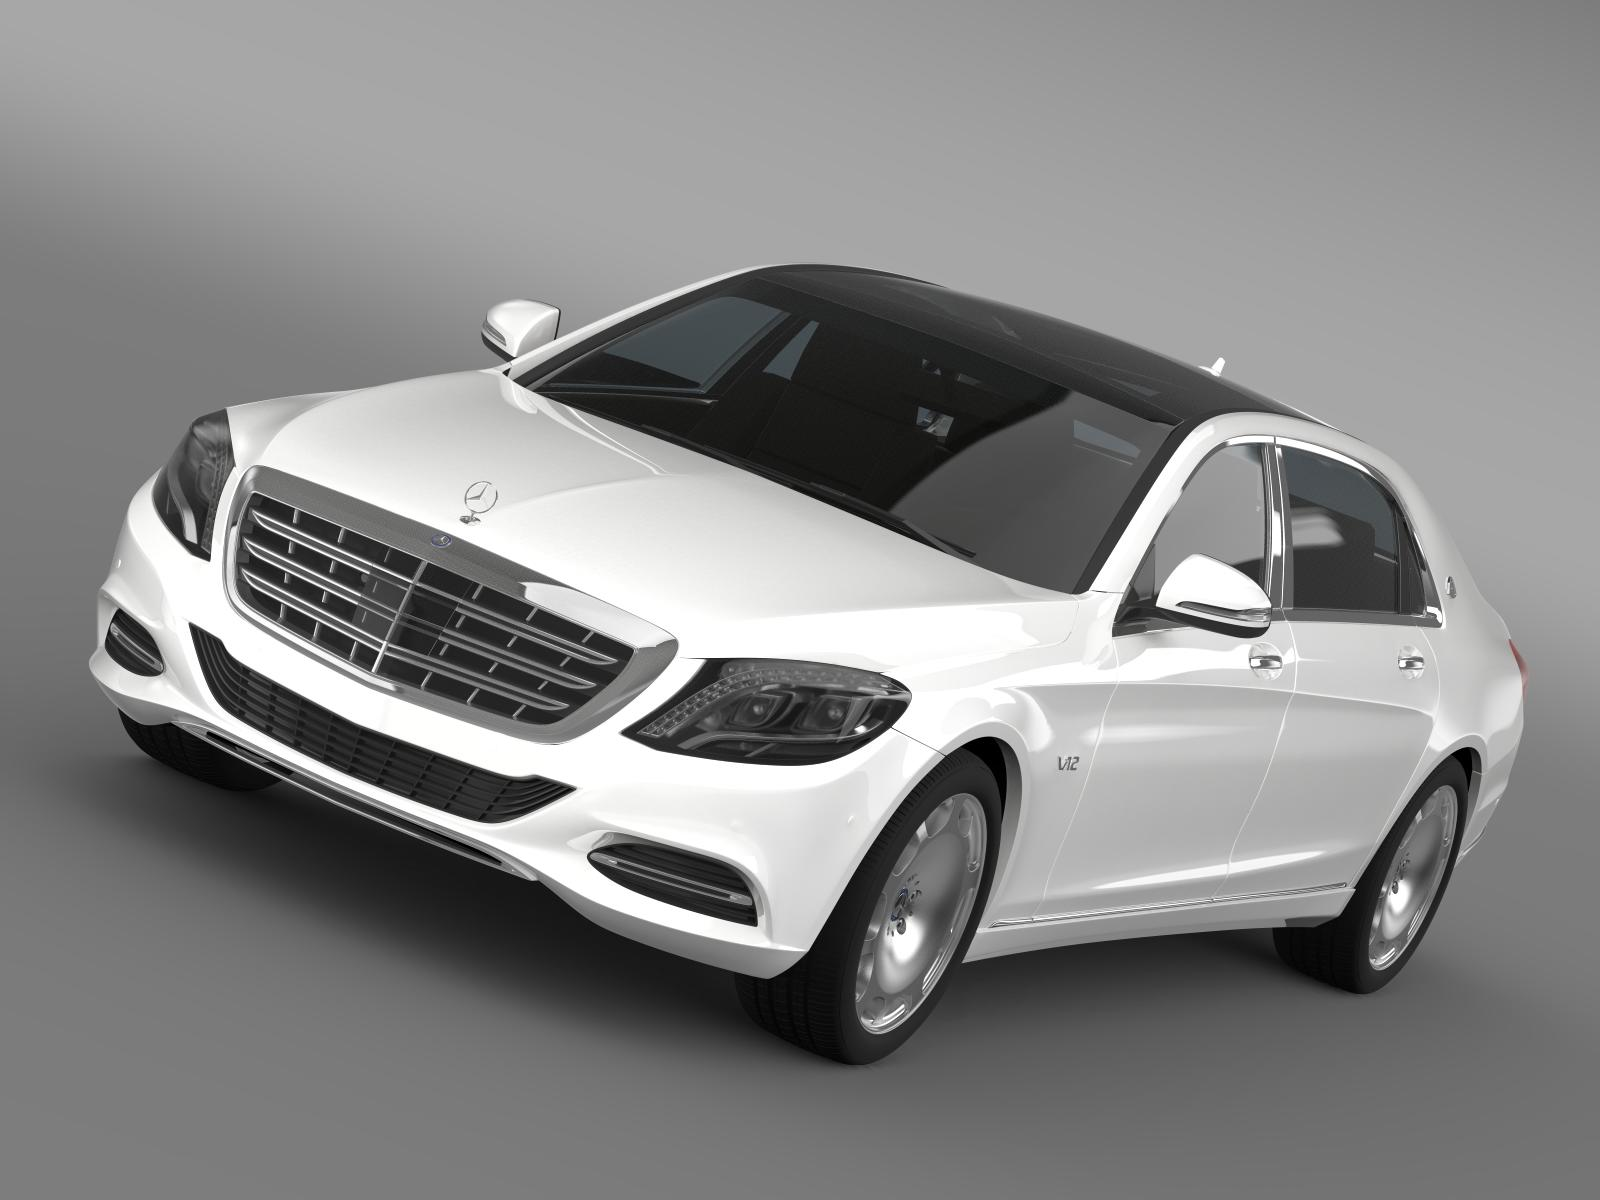 mercedes maybach s600 x222 2015 3d model 3ds max fbx c4d lwo ma mb hrc xsi obj 164902